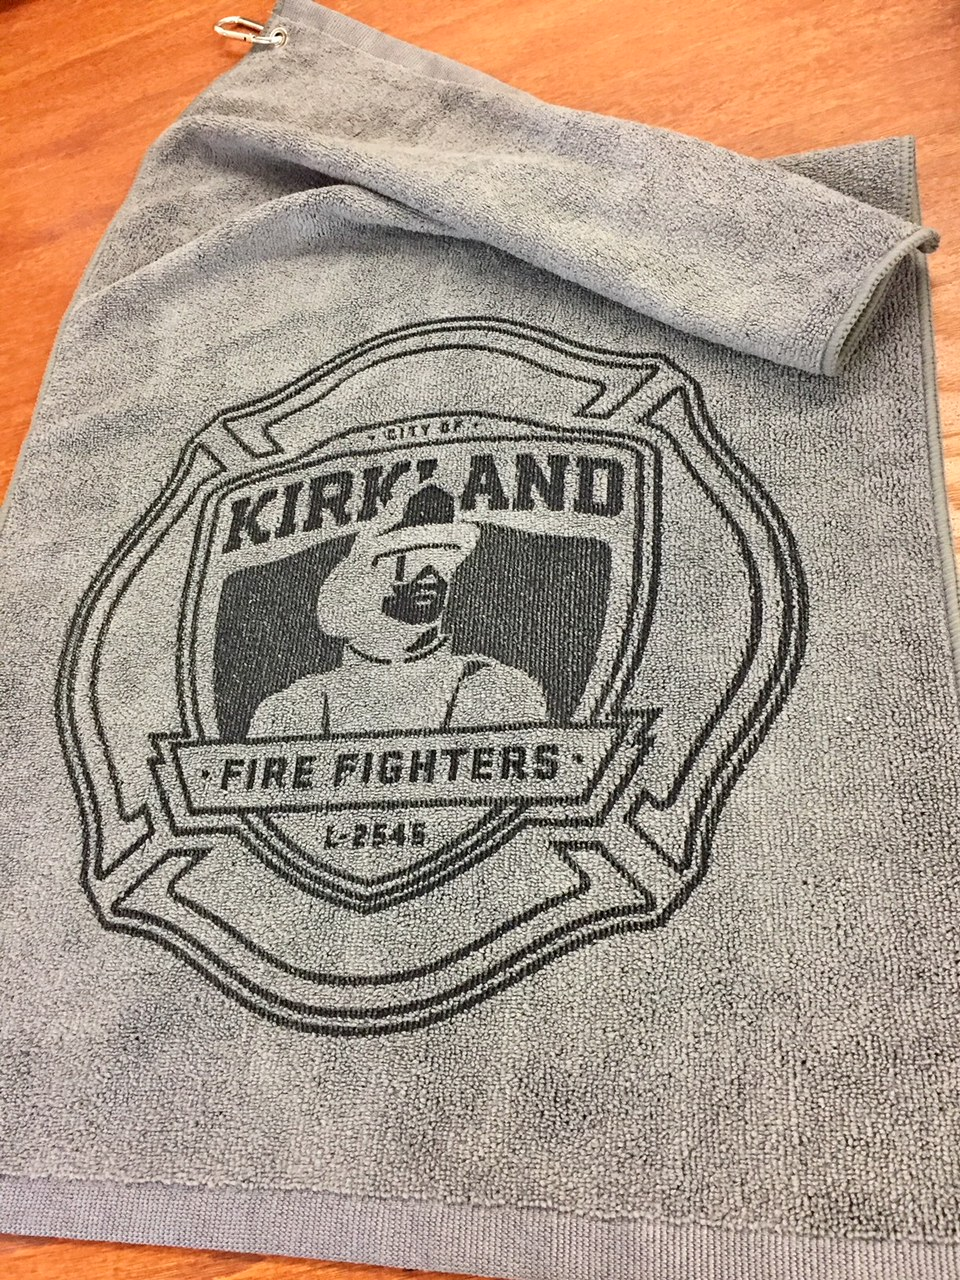 logounltd_laser_etching_embroidery_screen_printing_corporate_apparel_uniform_custom_tshirts_uniforms_dye_sublimation_kirkland_bellevue_seattle_redmond_branded_merchandise_promotional_products_logo_untd (79).jpg